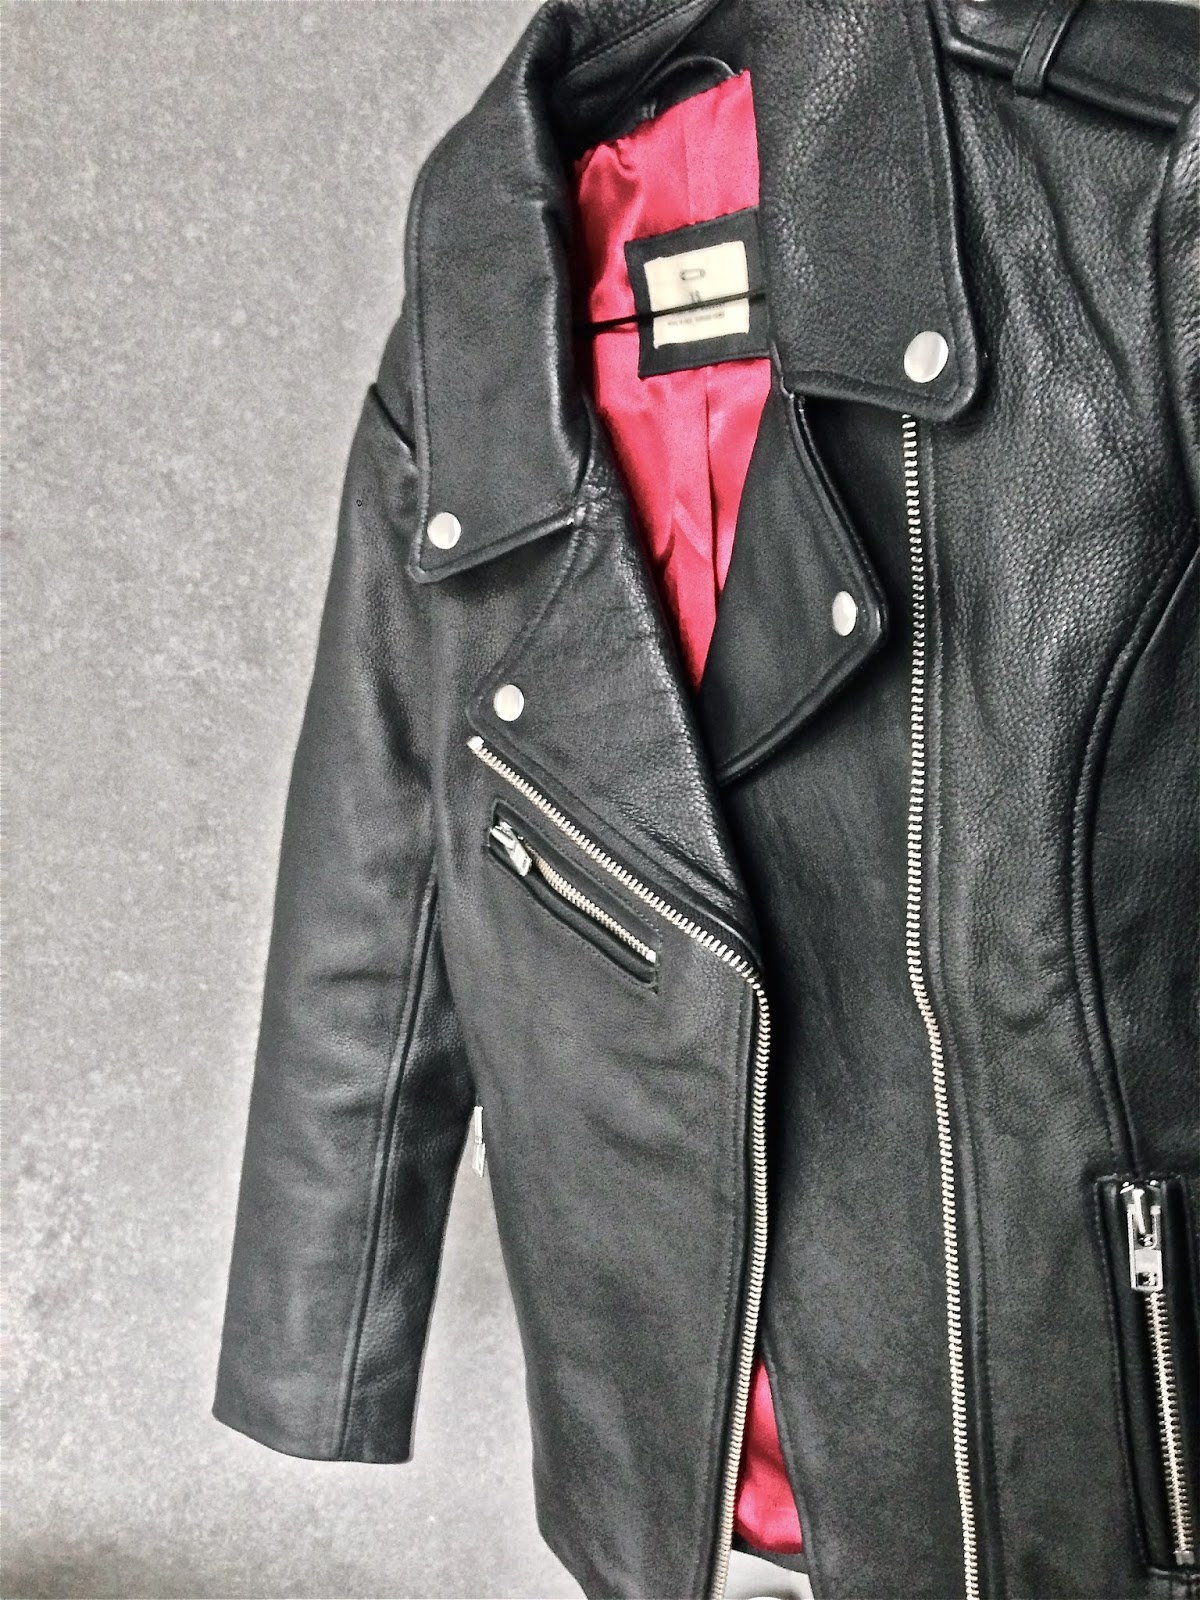 Urban Outfitters, Pins and Neddles, Leather Biker Jacket